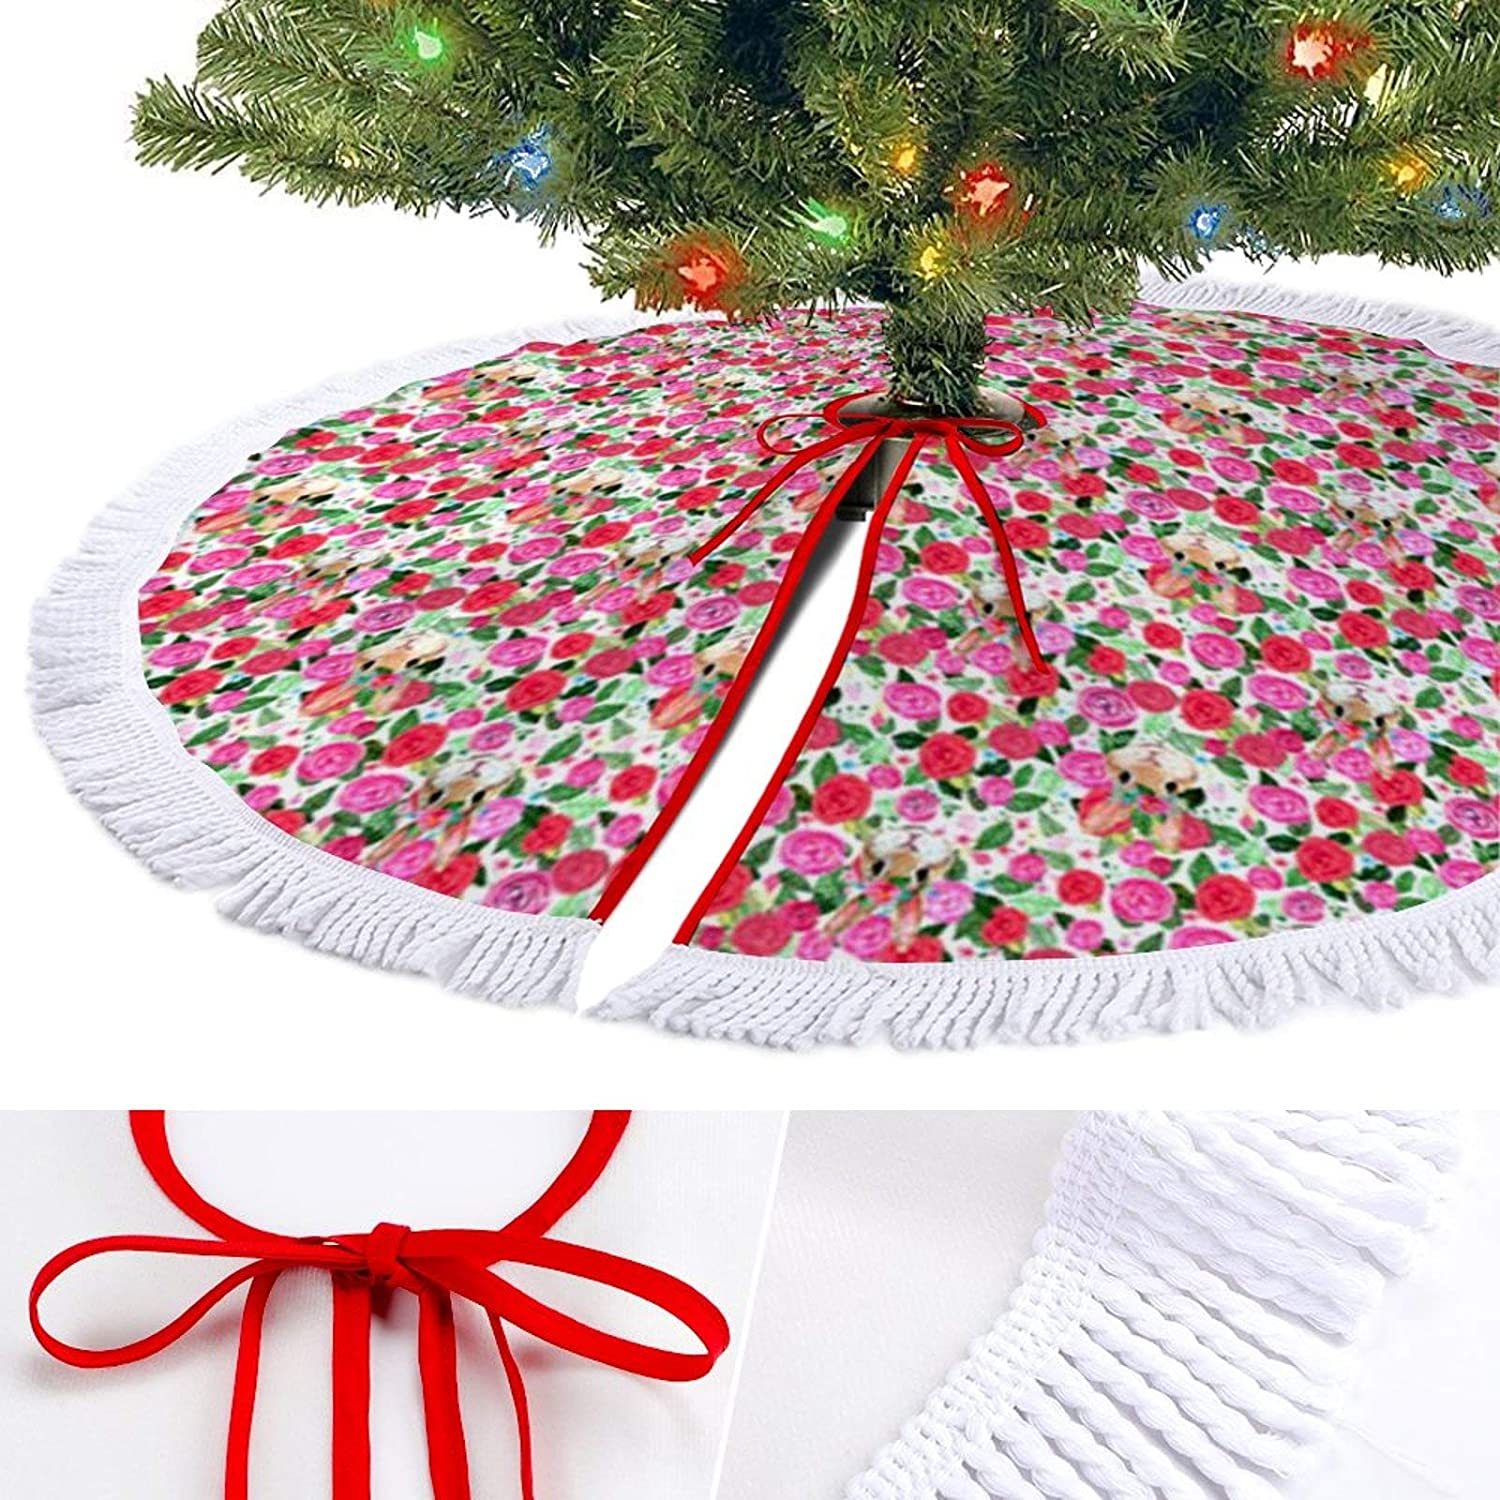 ODOKAY 48 Inch Large Christmas Tree Skirt Holiday Decorations for Outdoor Round 36 Inches Xmas Tree Skirts Bunny Blush Roses